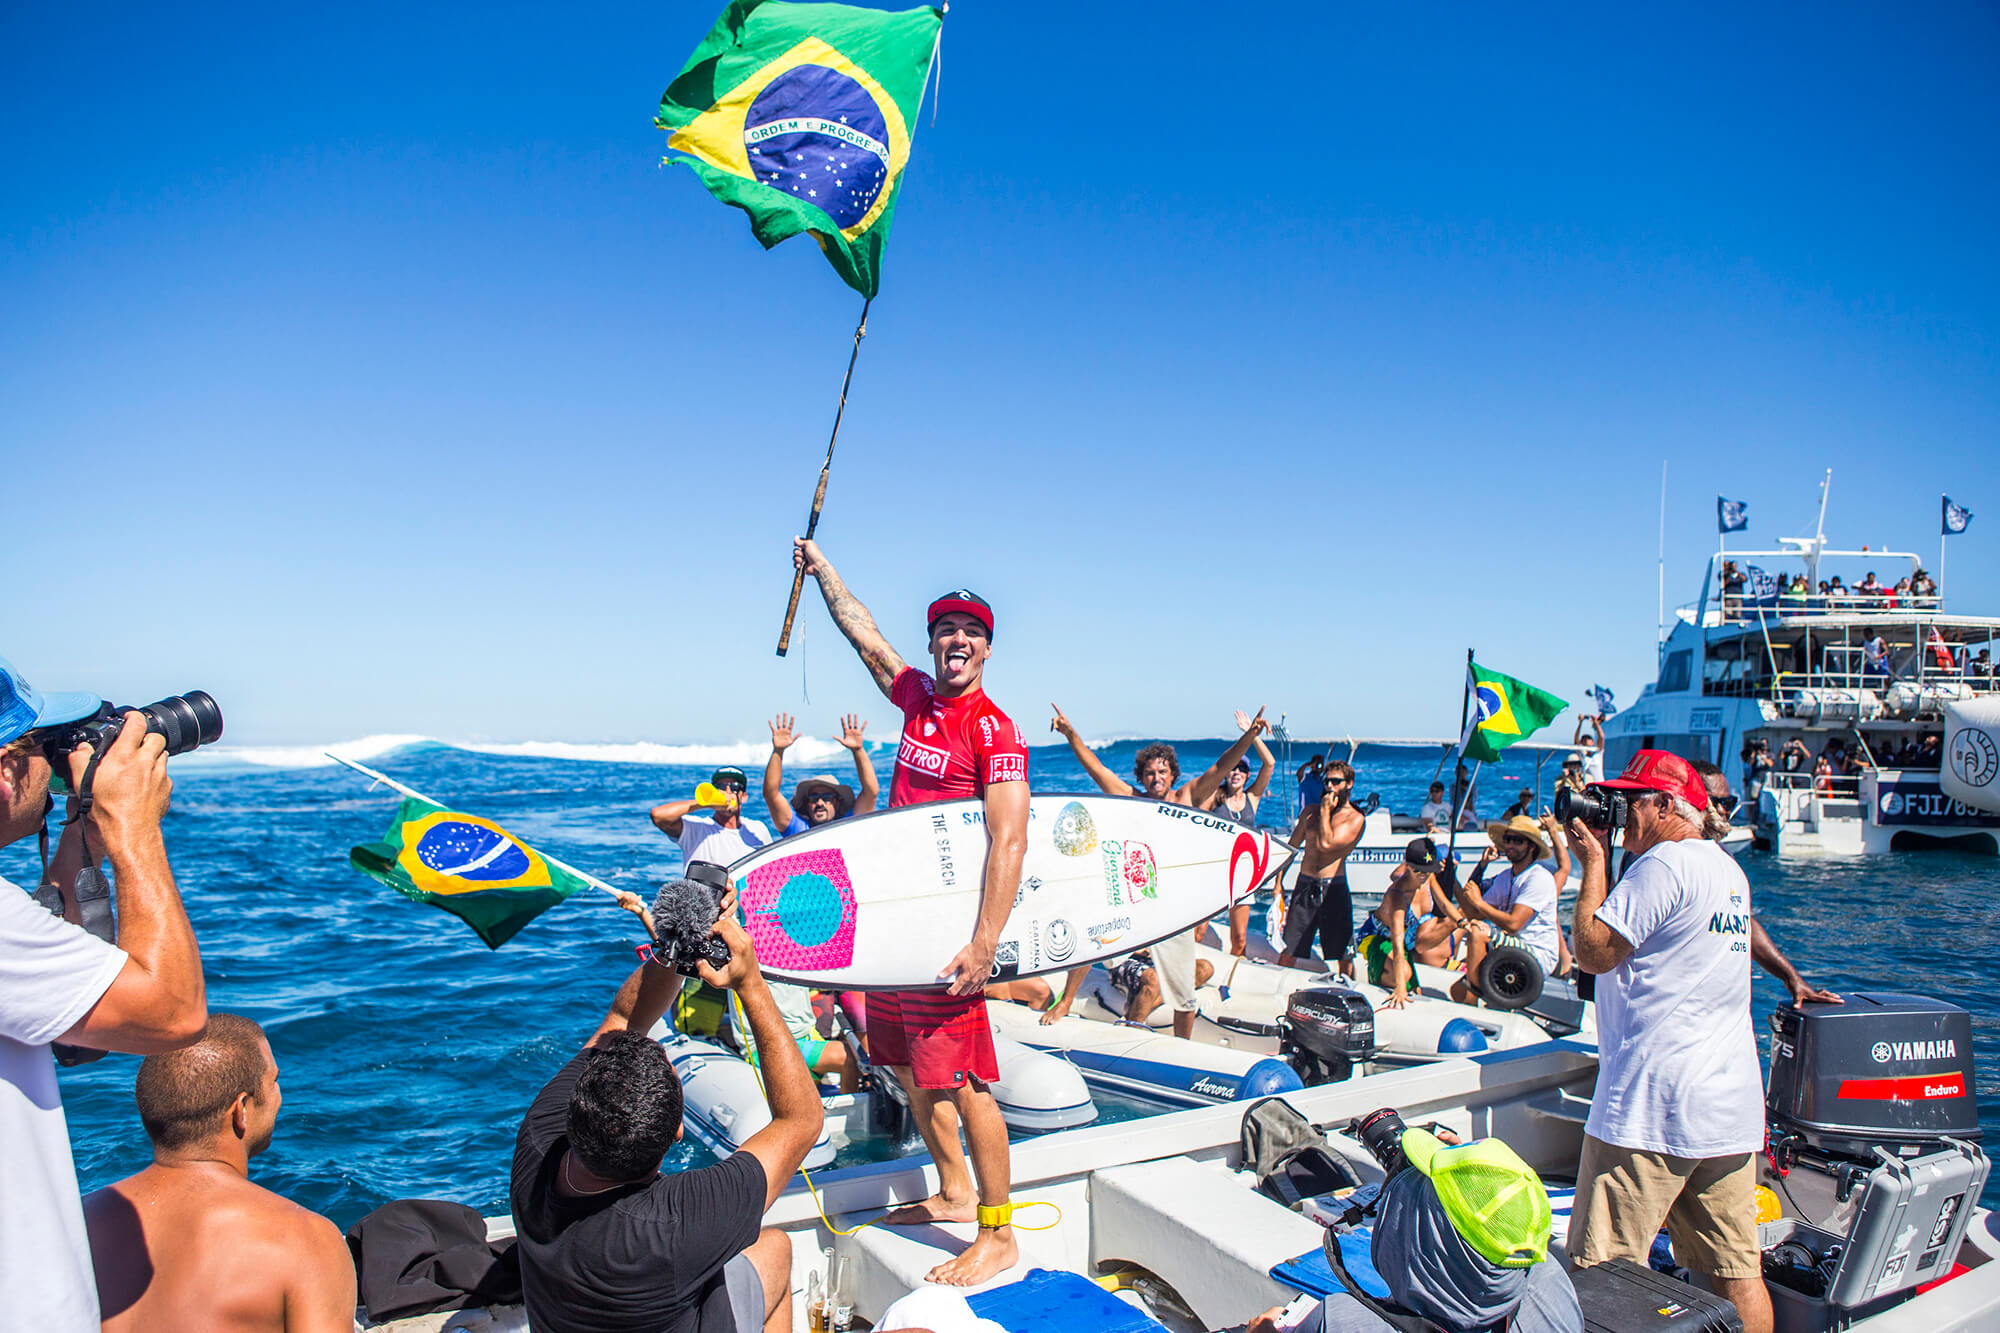 Gabriel Medina wins the Fiji Pro 2016 with a surfboard shaped by Johnny Cabianca